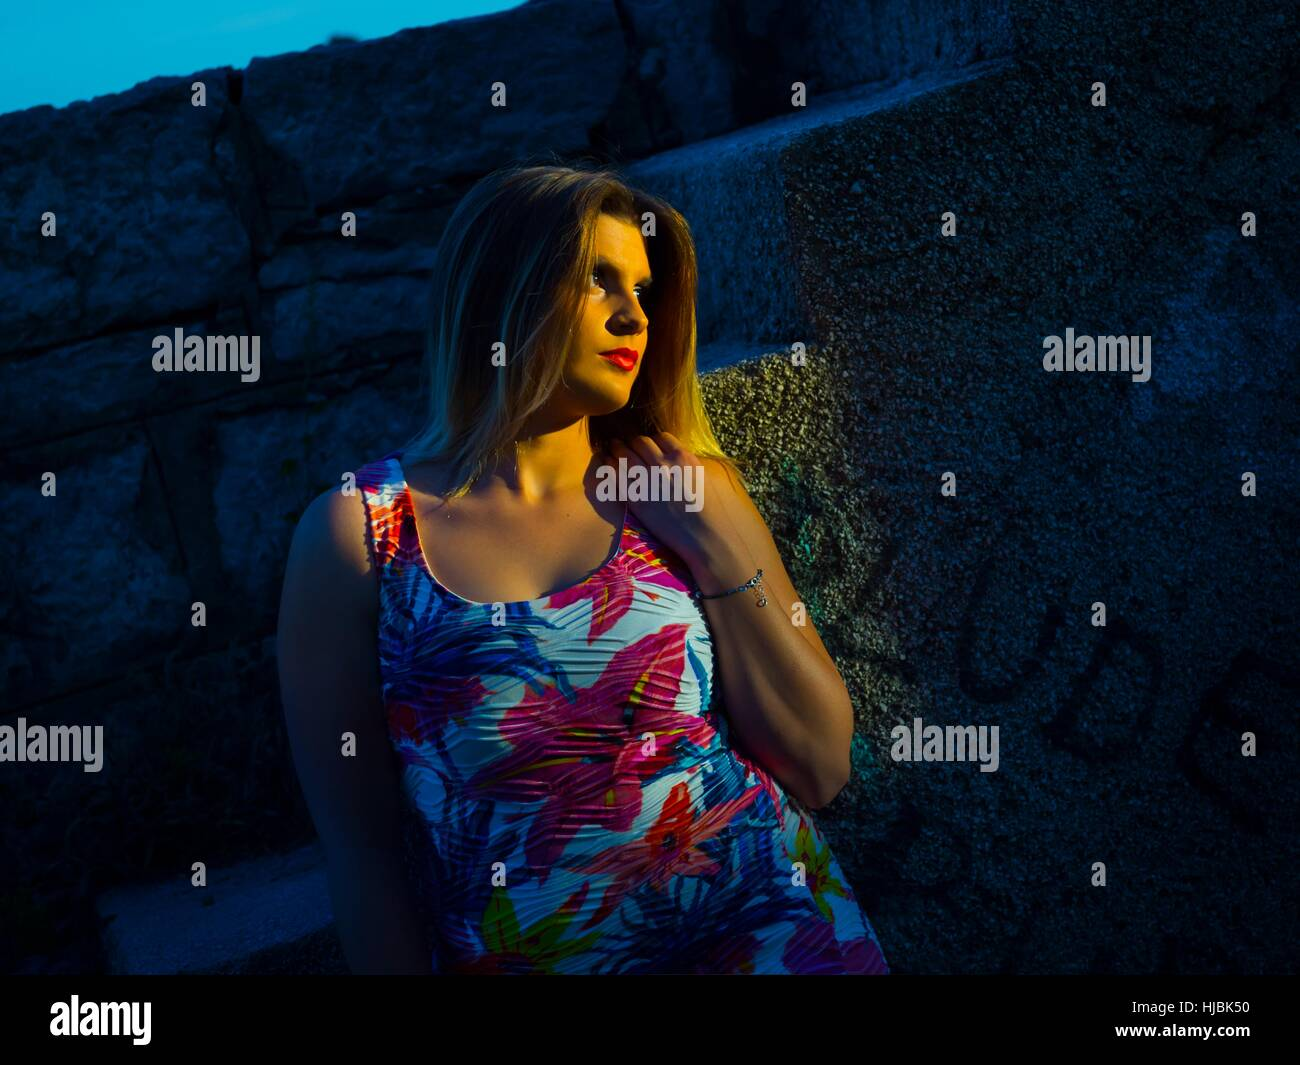 Sunset girl colorful summerdress sundress dress looking away serious Red-lips contrasty dark sun-lighted sidelight - Stock Image